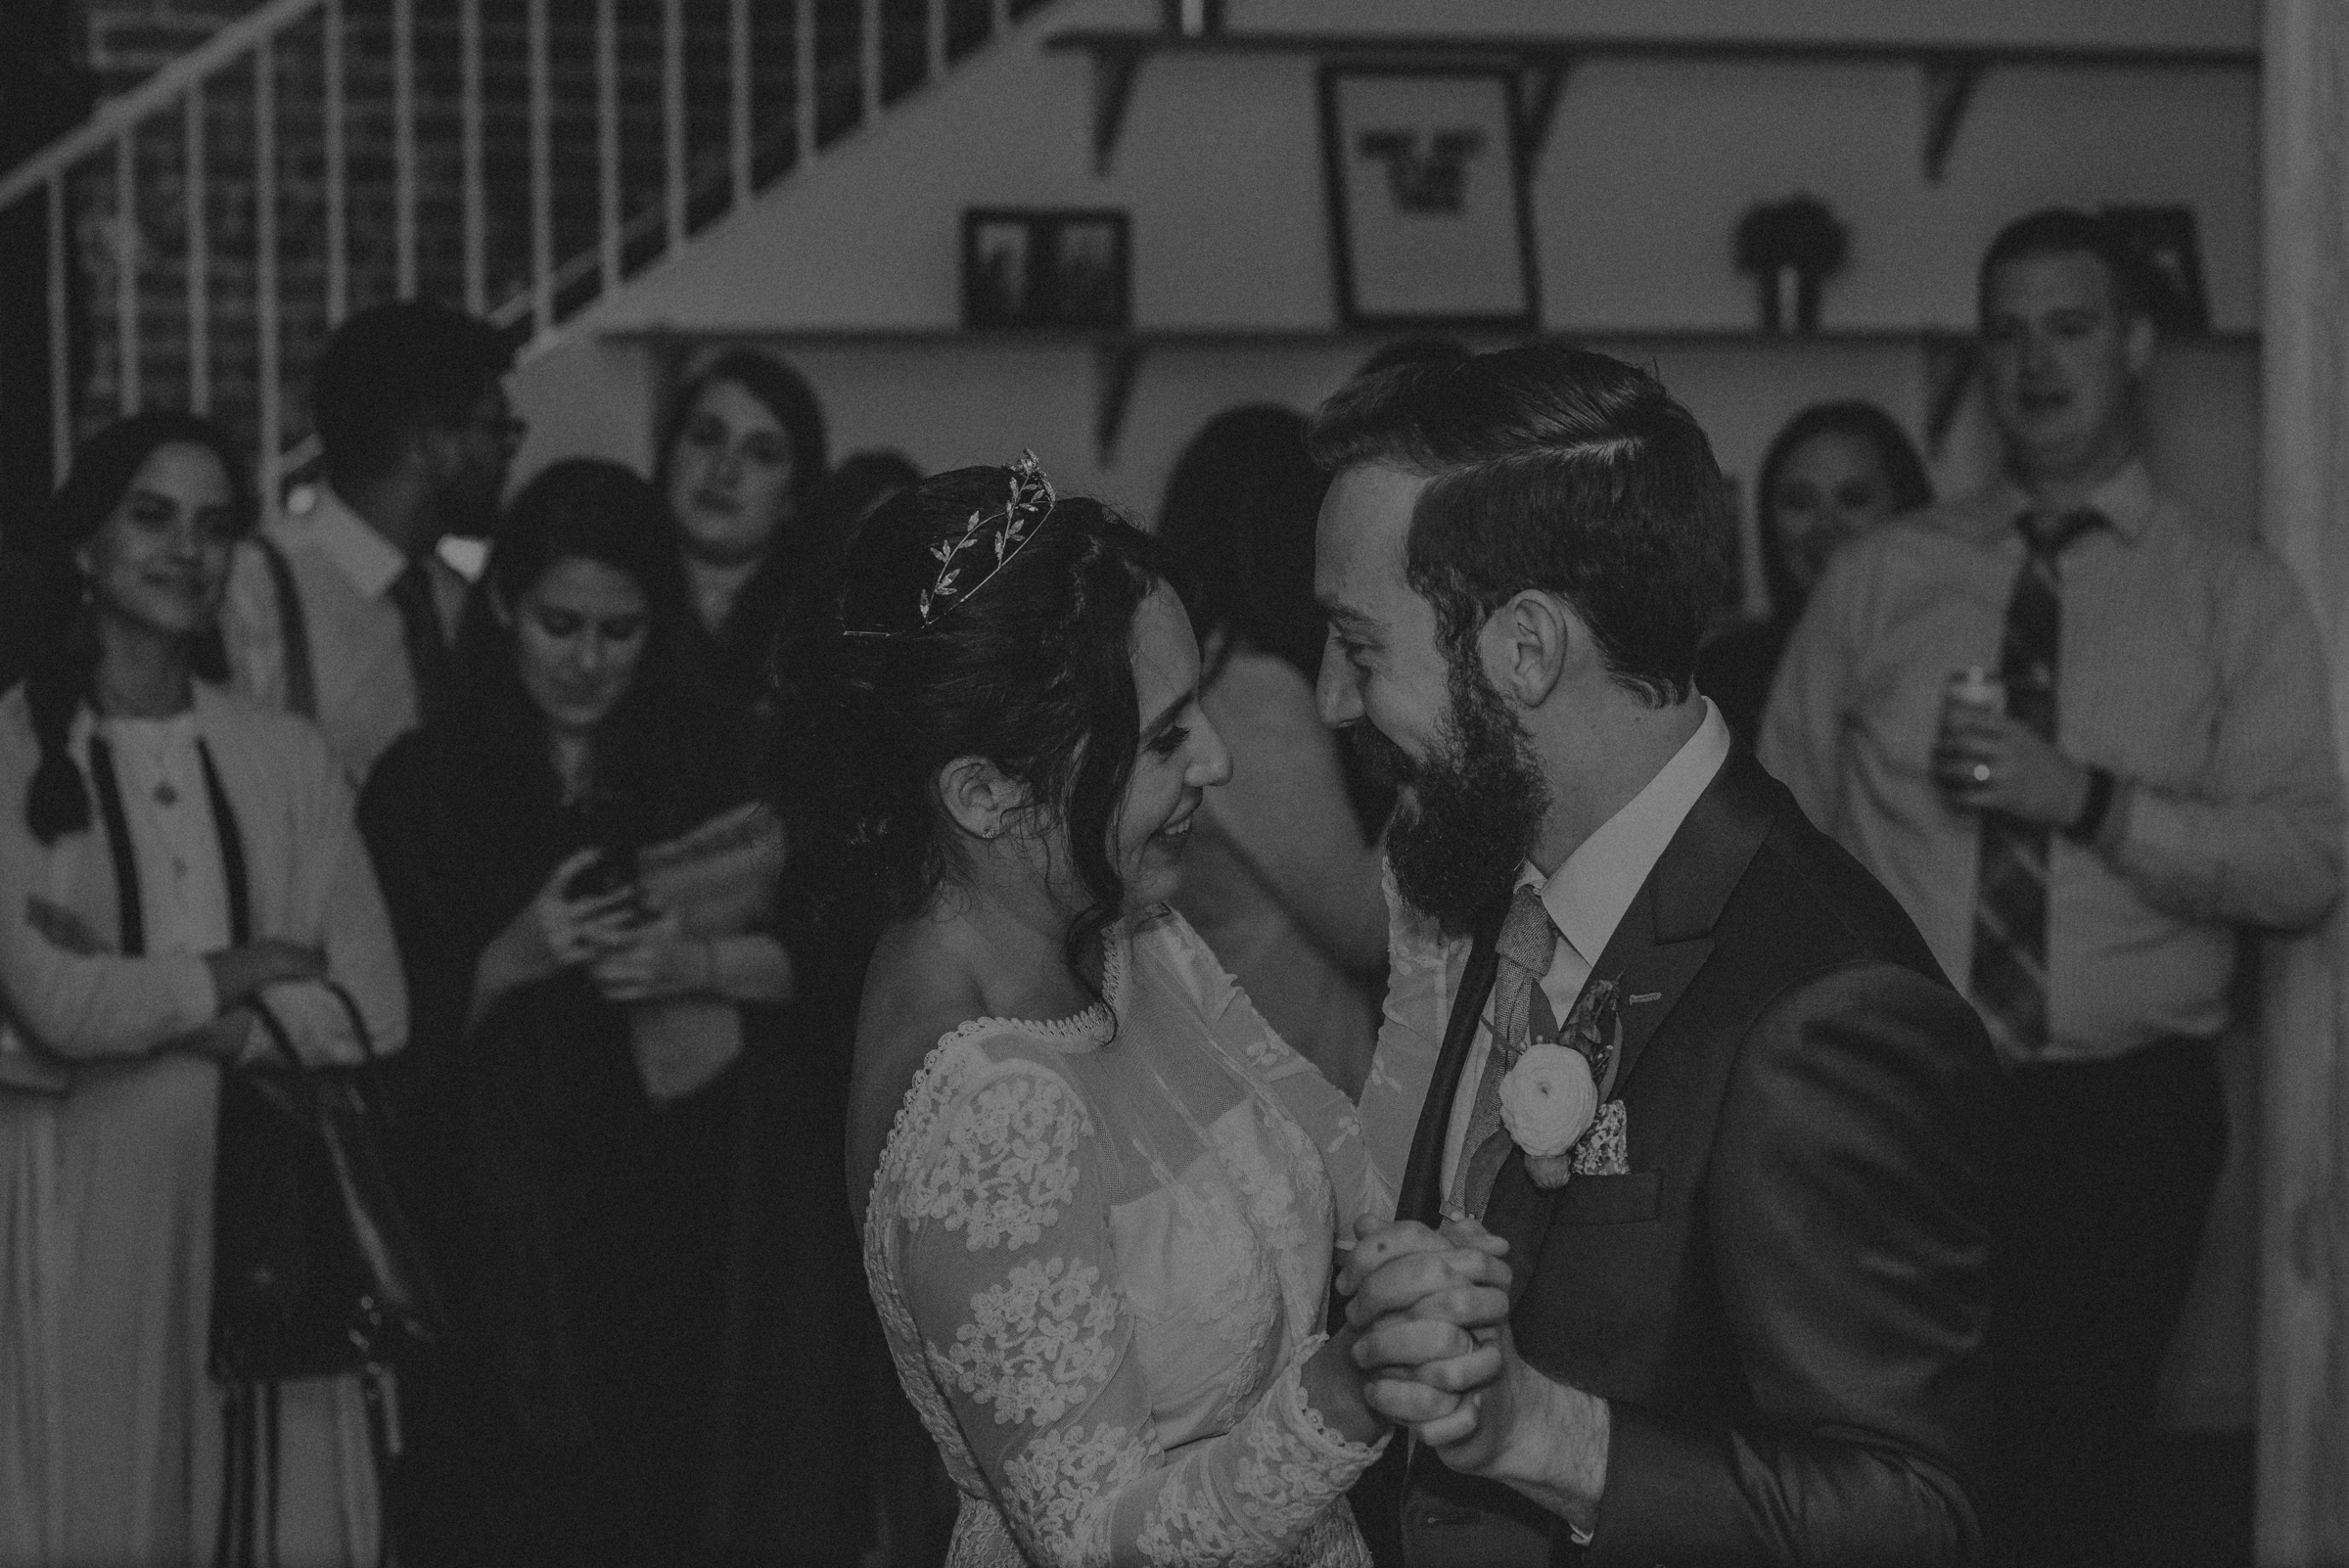 Isaiah + Taylor Photography - The Unique Space Wedding, Los Angeles Wedding Photography 155.jpg